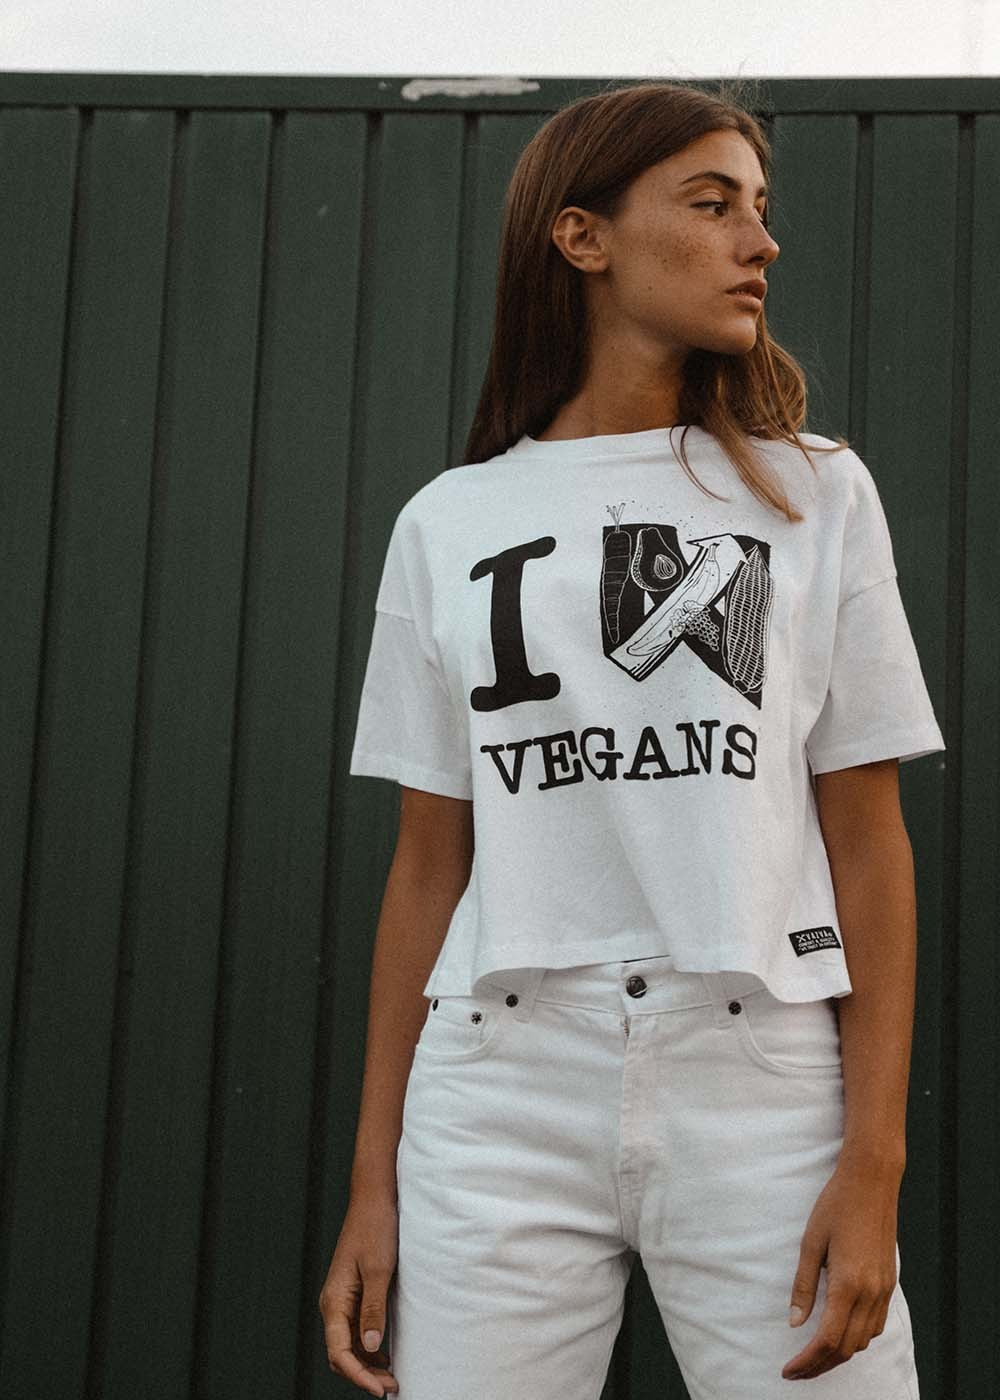 LOVE VEGANS T-SHIRT